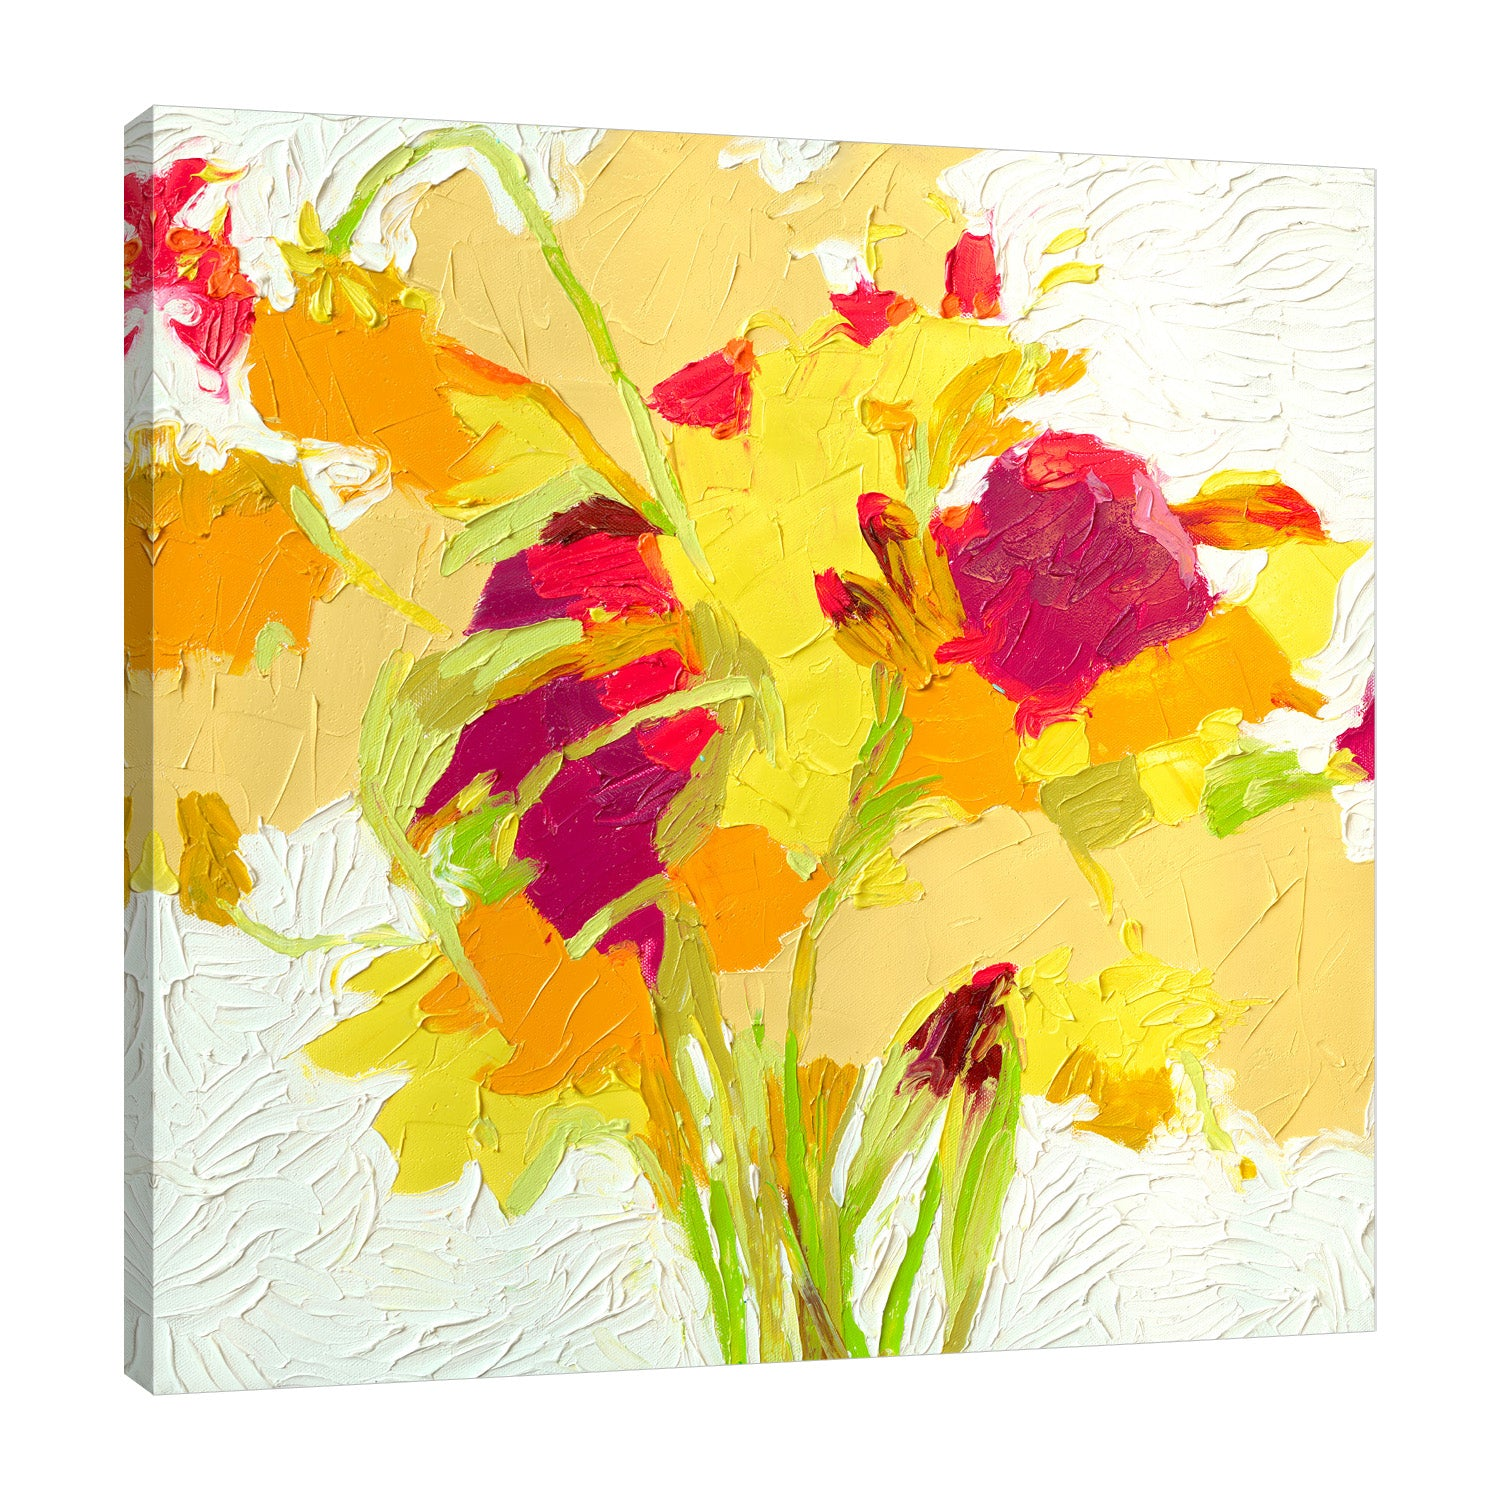 Iris-Scott,Modern & Contemporary,Floral & Botanical,florals,flowers,plants,botanical,leaves,